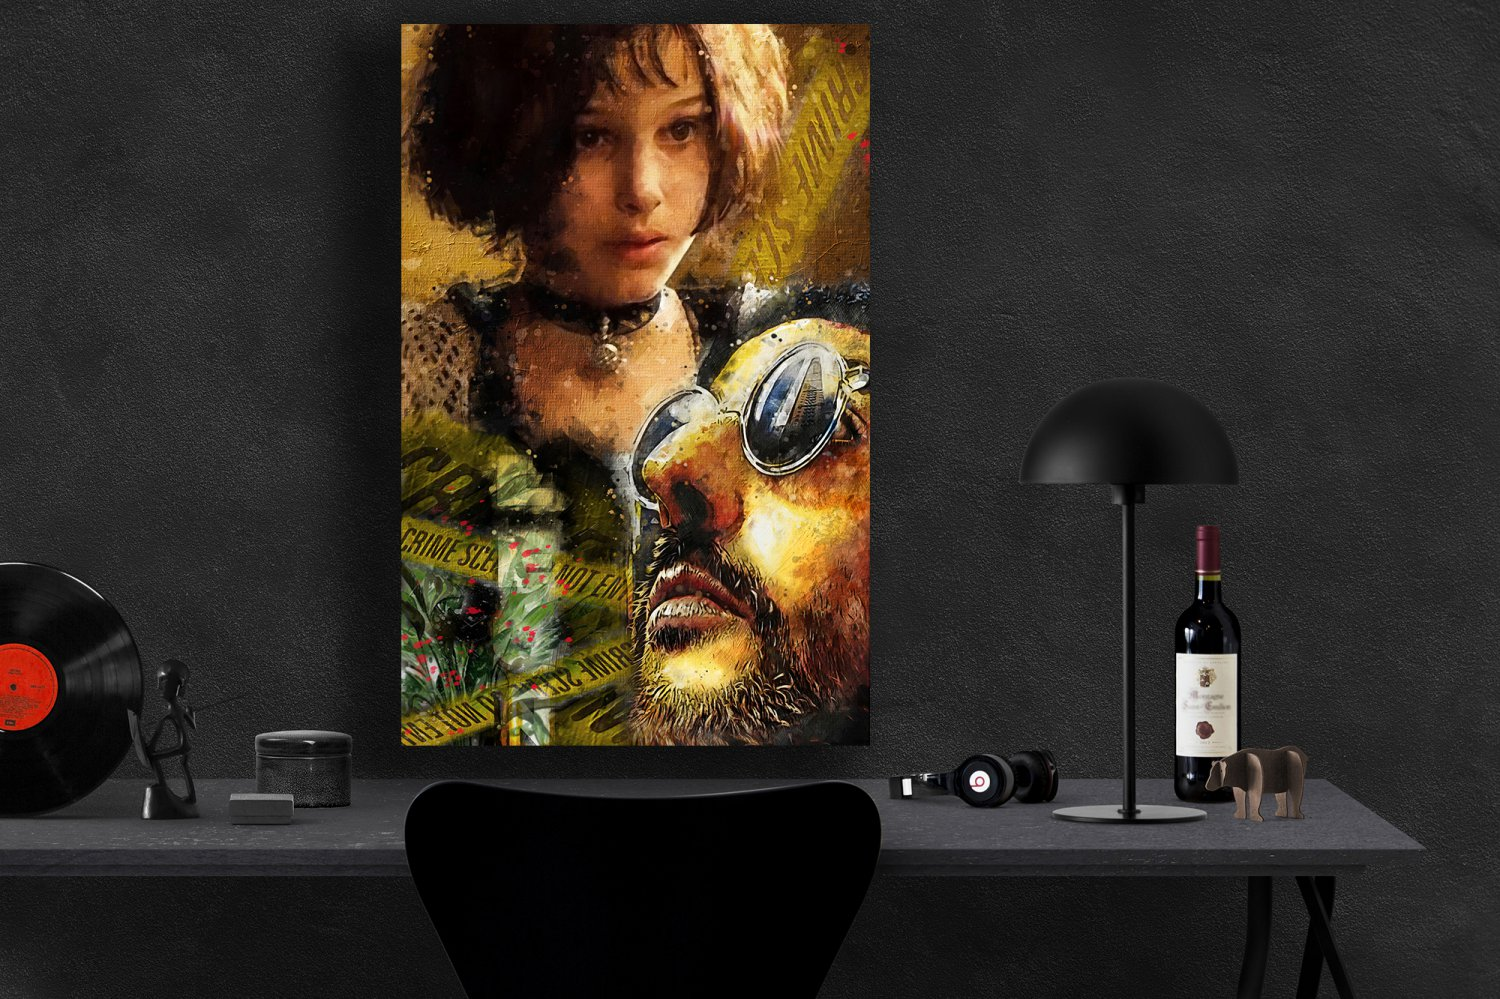 Leon The Professional 1994 Jean Reno, Gary Oldman, Natalie Portman  8x12 inches Photo Paper